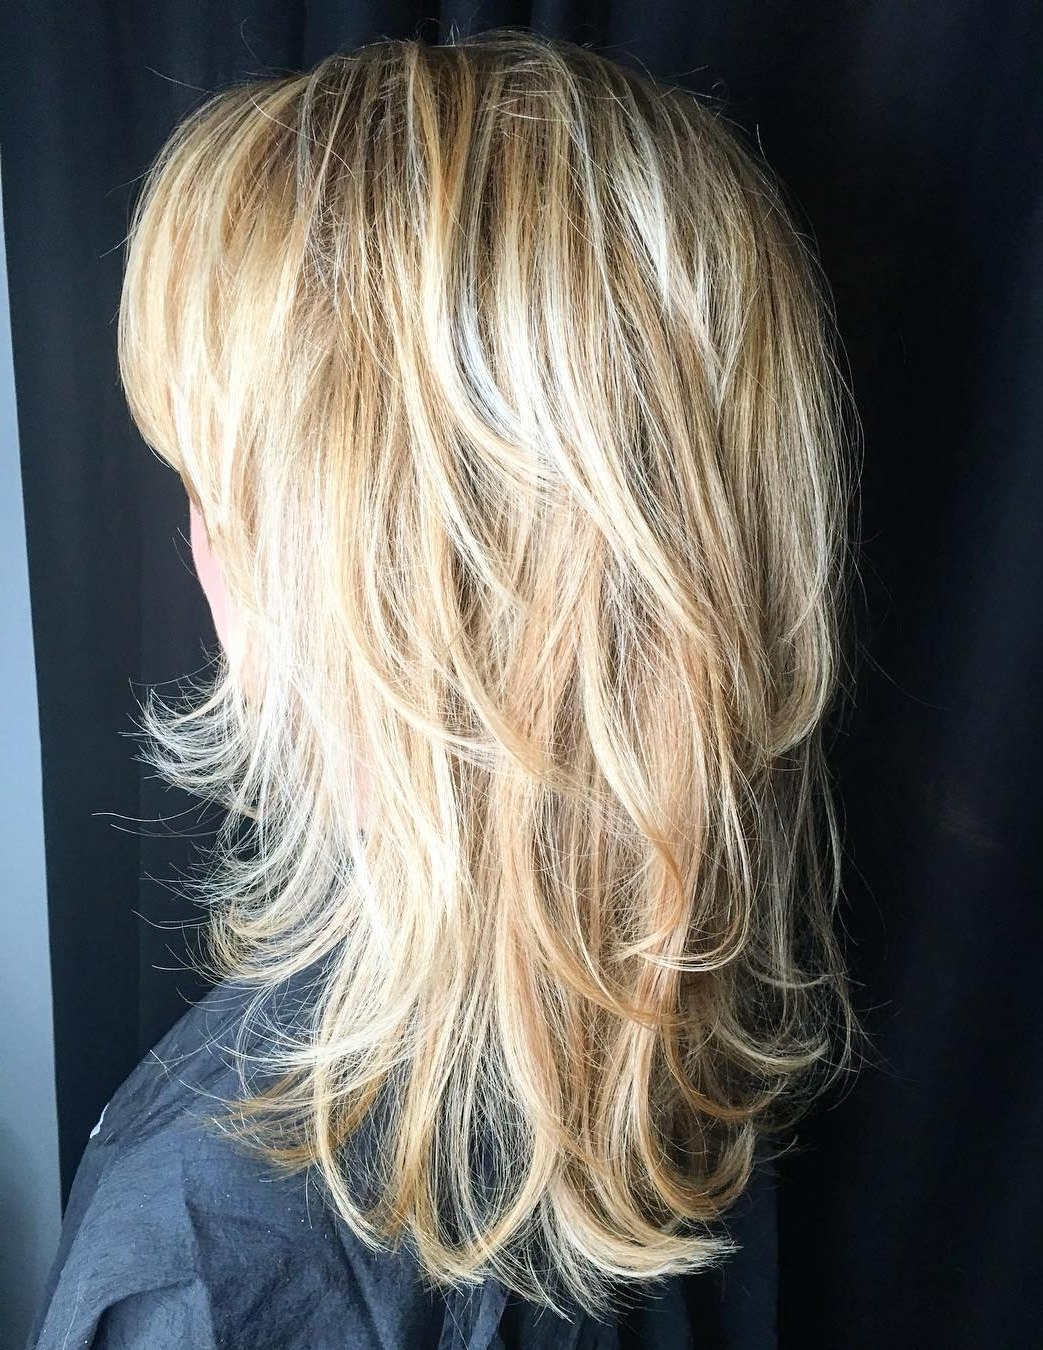 Recent Voluminous And Carefree Loose Look Blonde Hairstyles Inside 50 Lovely Long Shag Haircuts For Effortless Stylish Looks (View 16 of 20)